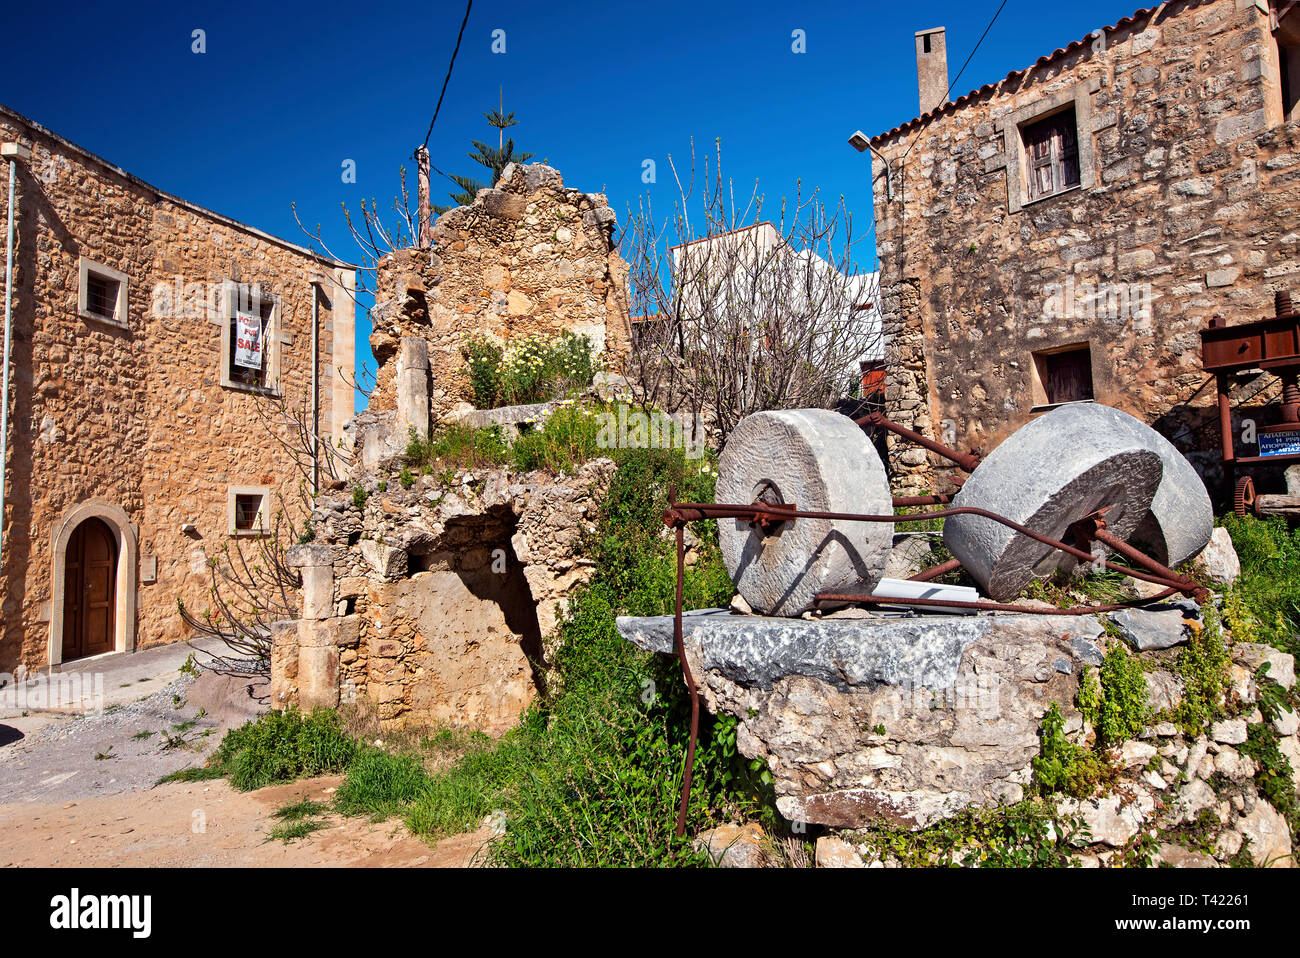 Picturesque 'corner' in  Maroulas village (Rethimno, Crete, Greece), known for its 2 old, Venetian towers. - Stock Image